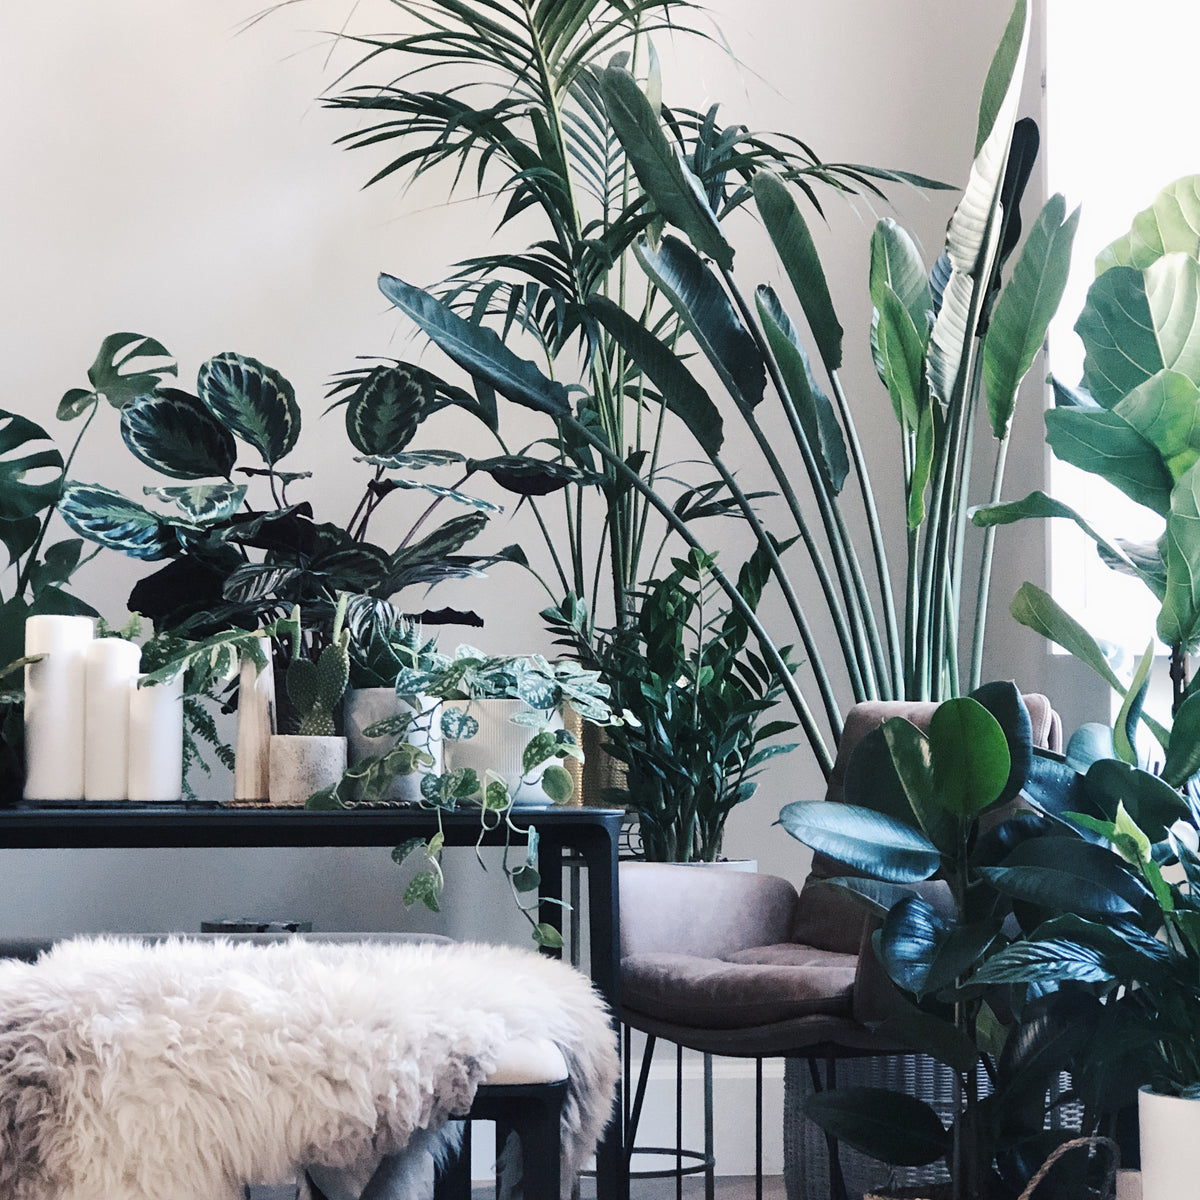 Grow your indoor jungle